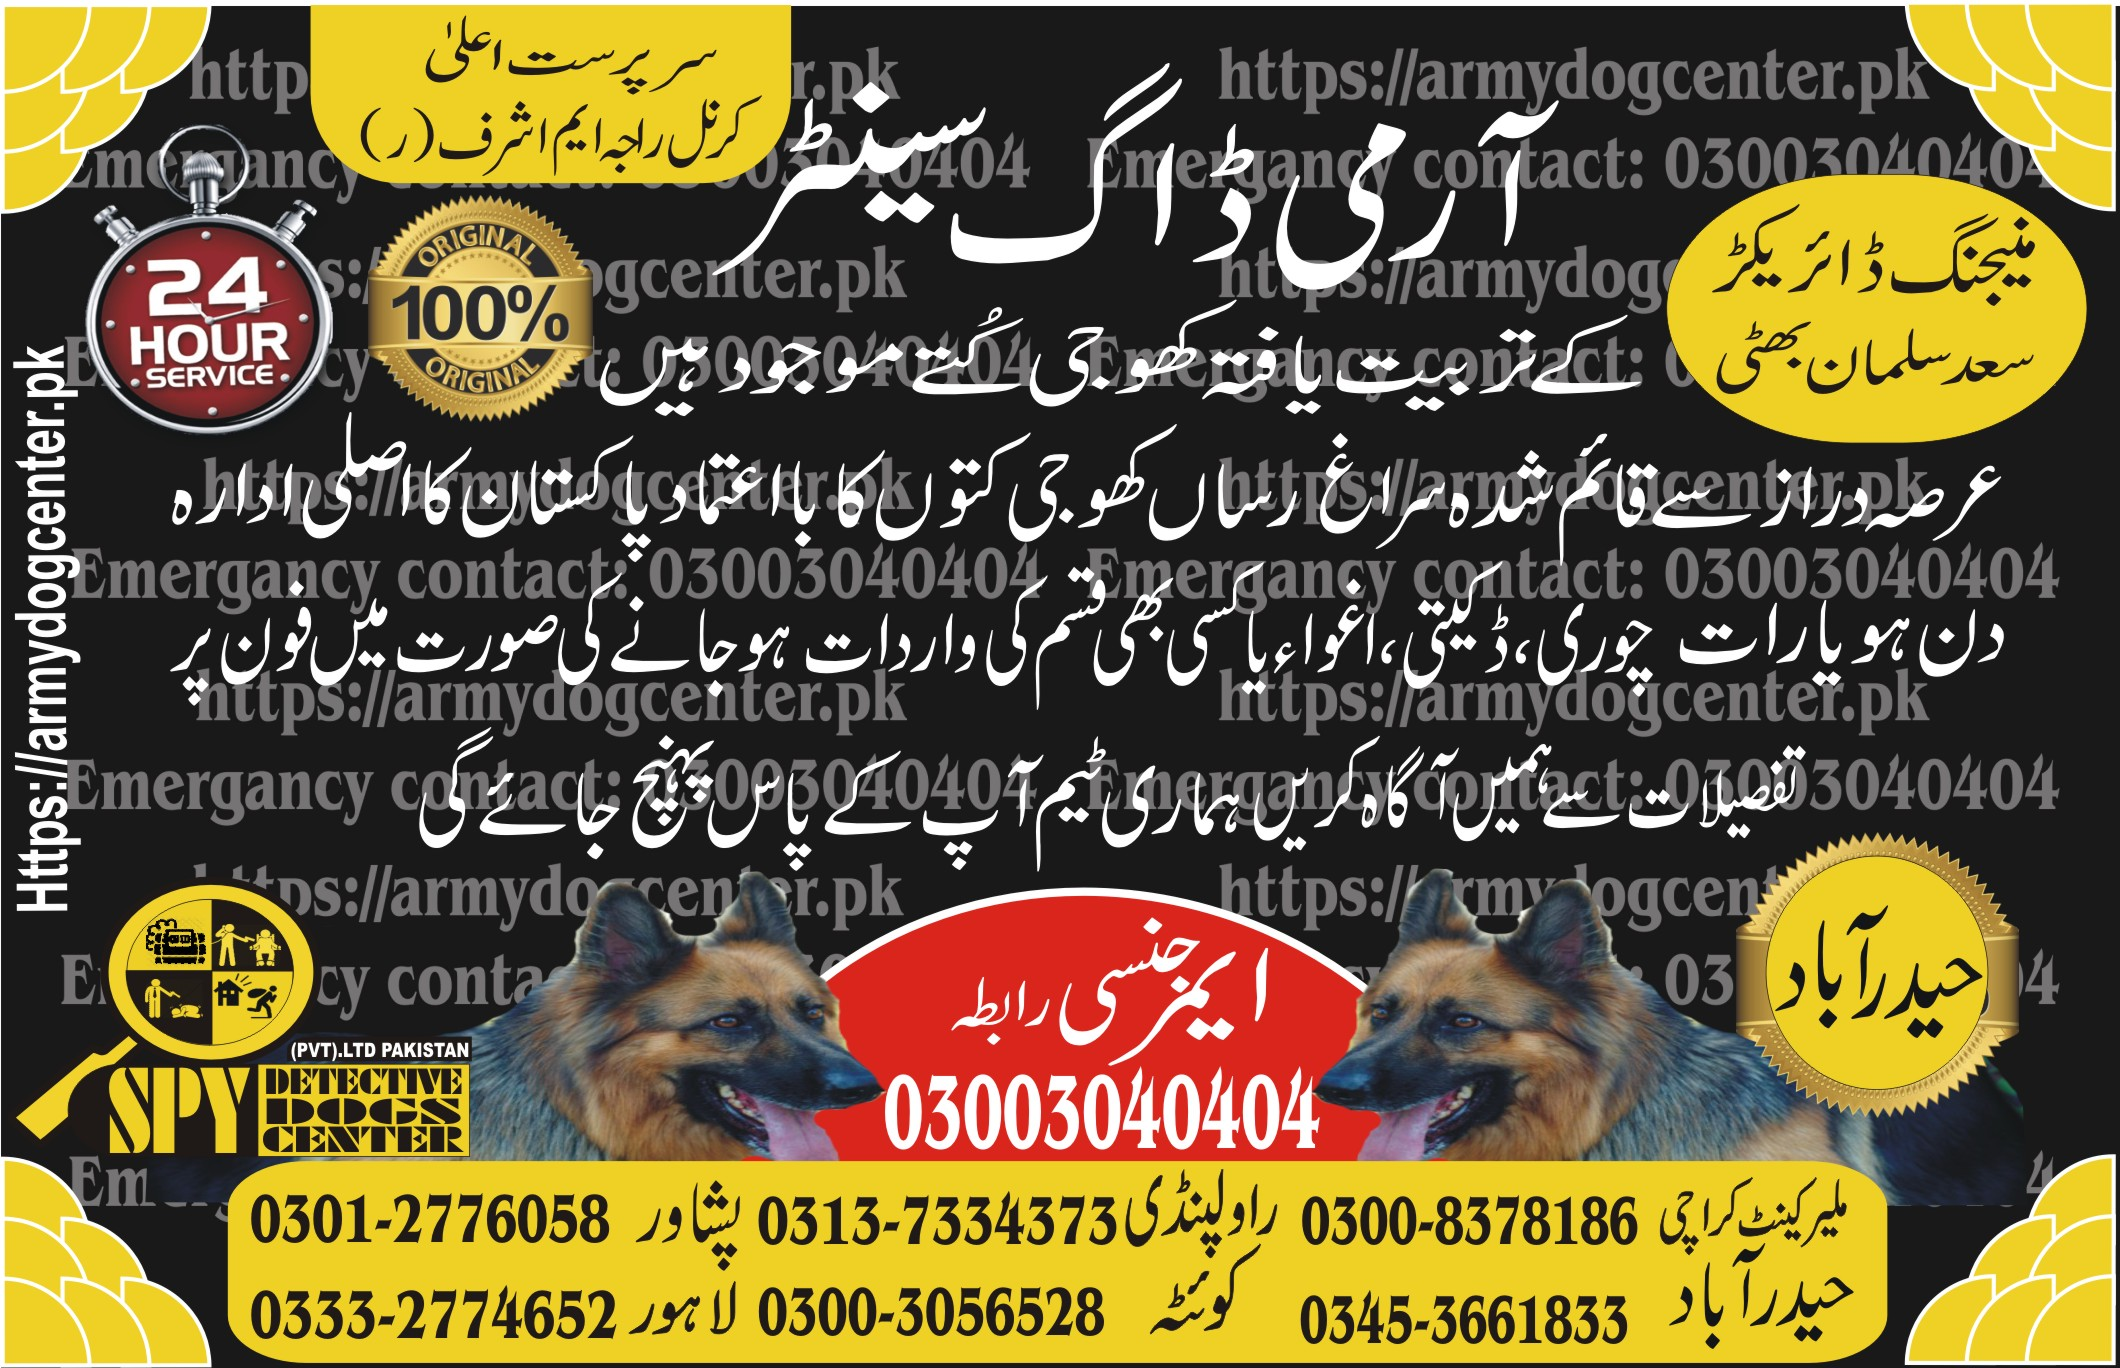 Army dog center hyderabad